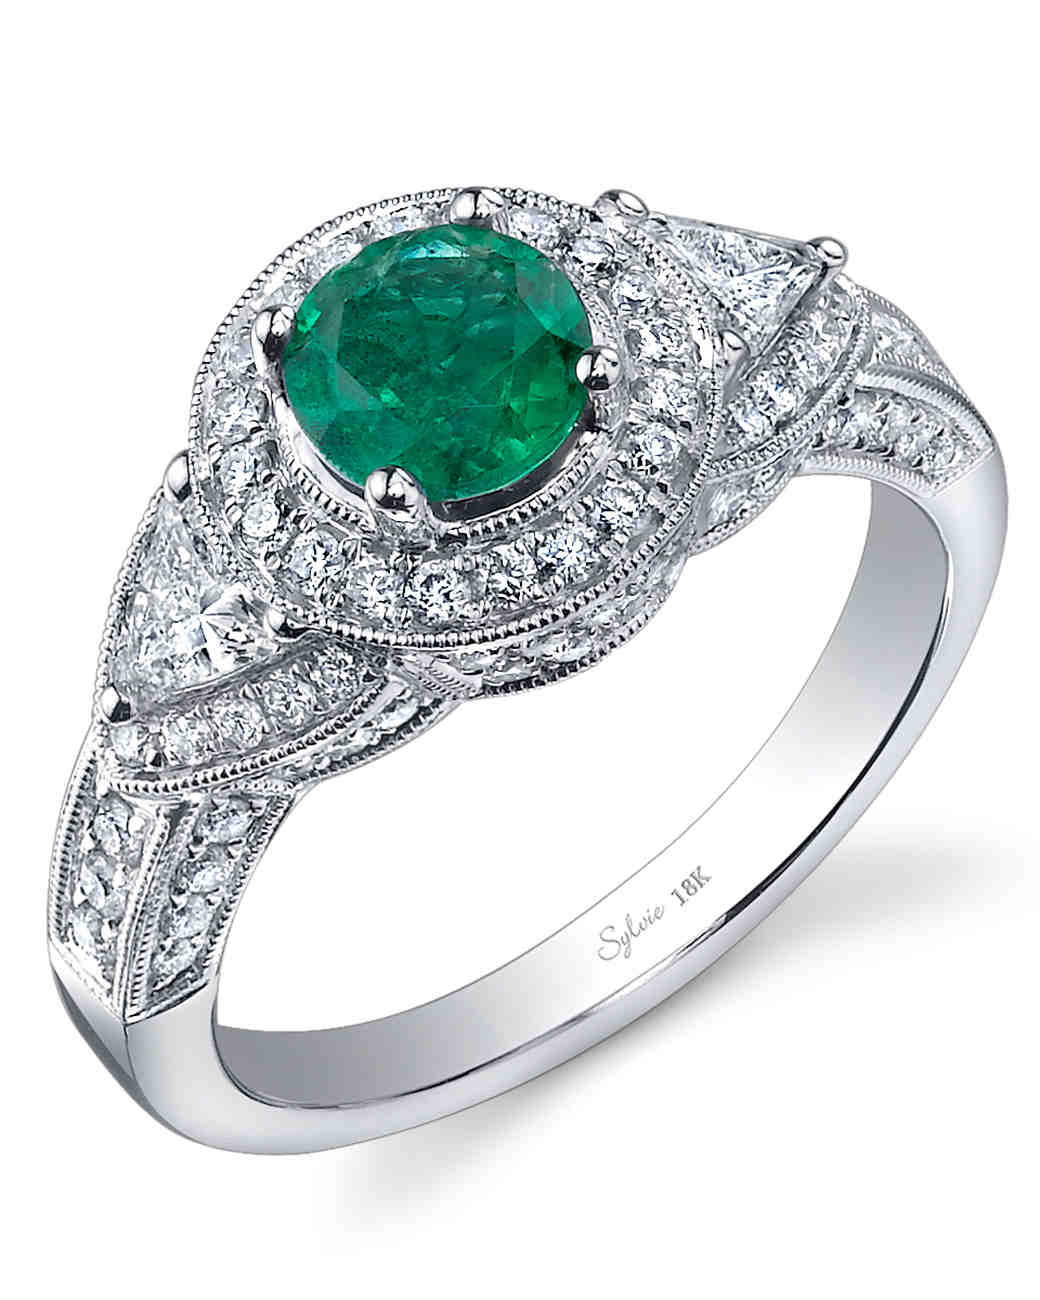 Sylvie Collection Emerald Engagement Ring